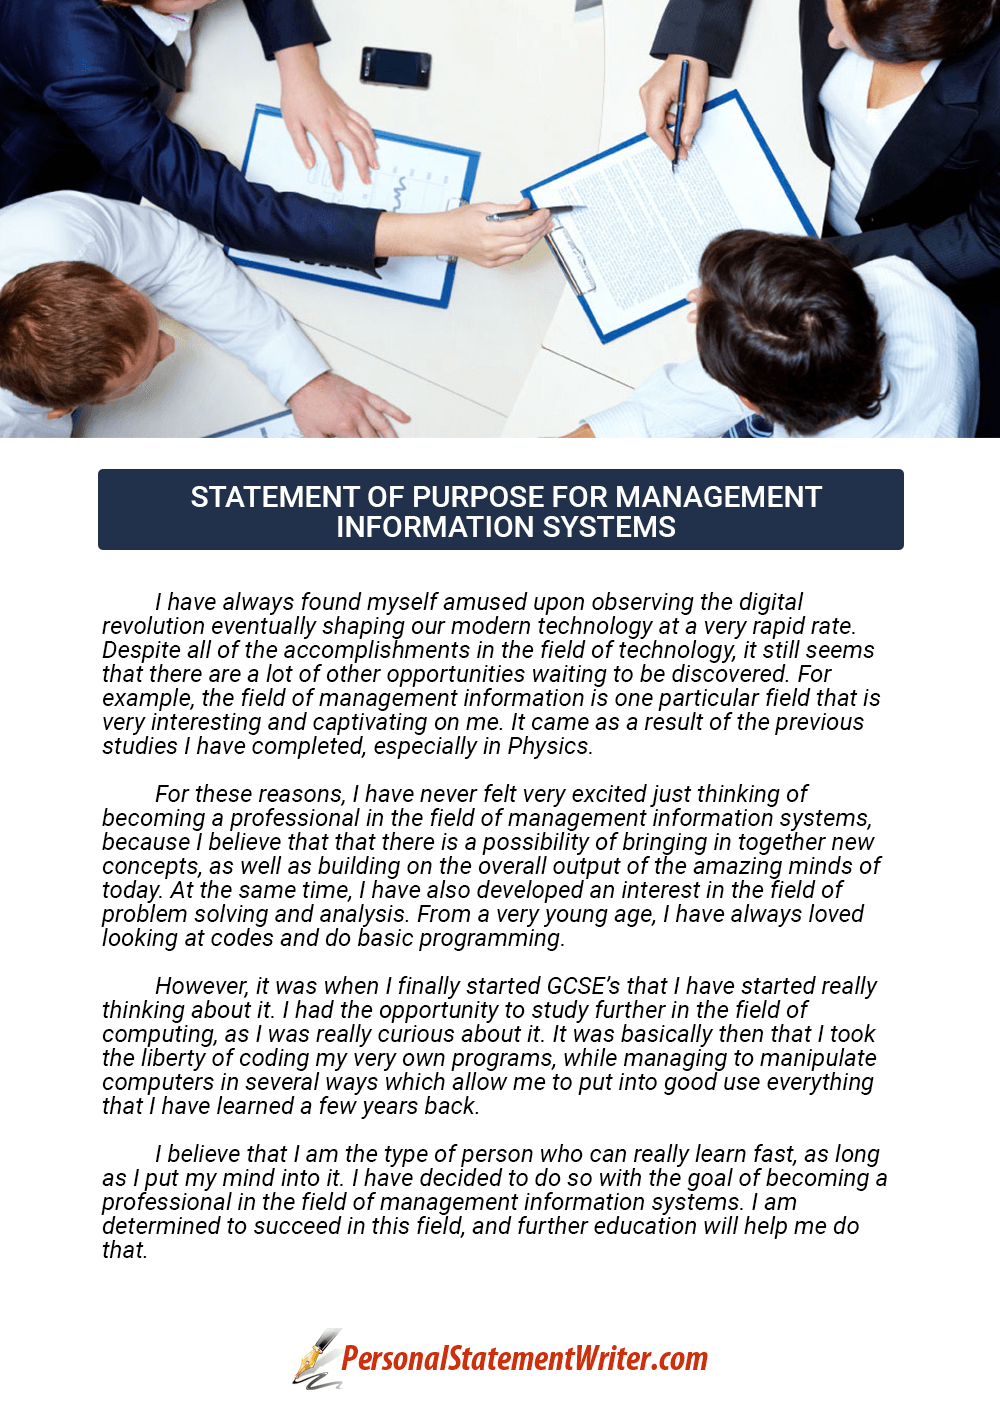 management information systems essay questions